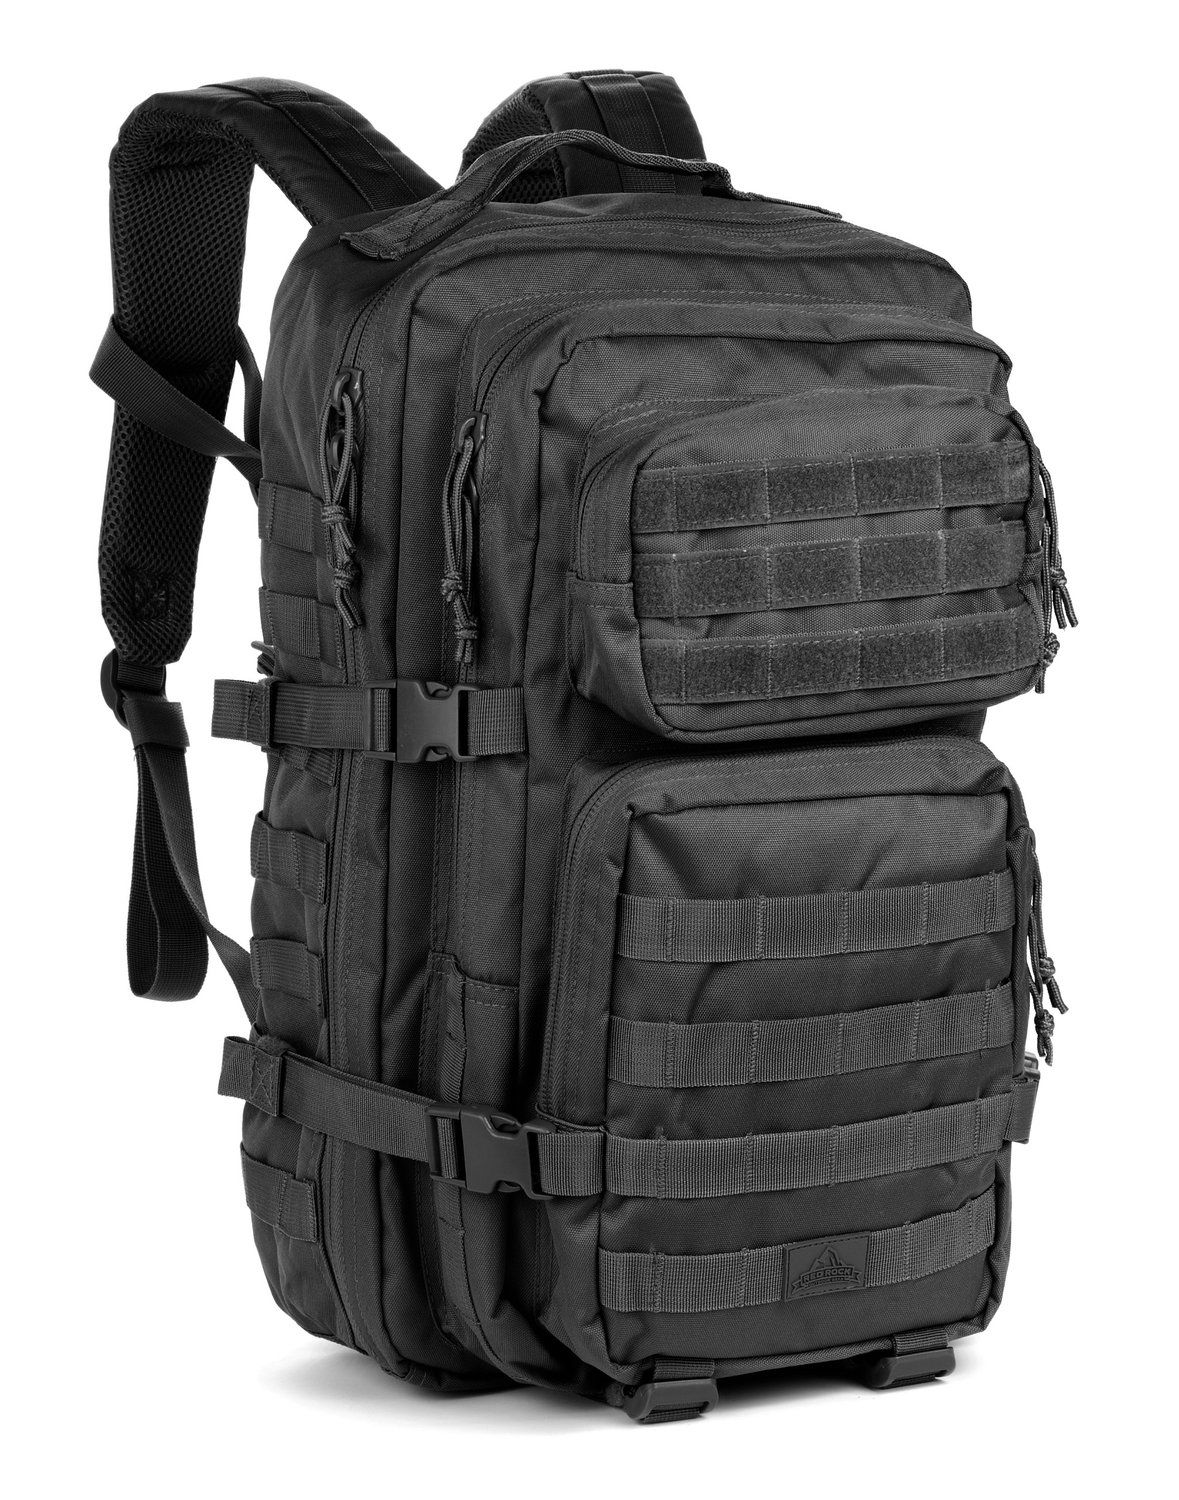 dc0b45f79bd0 Red Rock Outdoor Gear Large Assault Pack    Stop everything and read more  details here!   Day backpacks